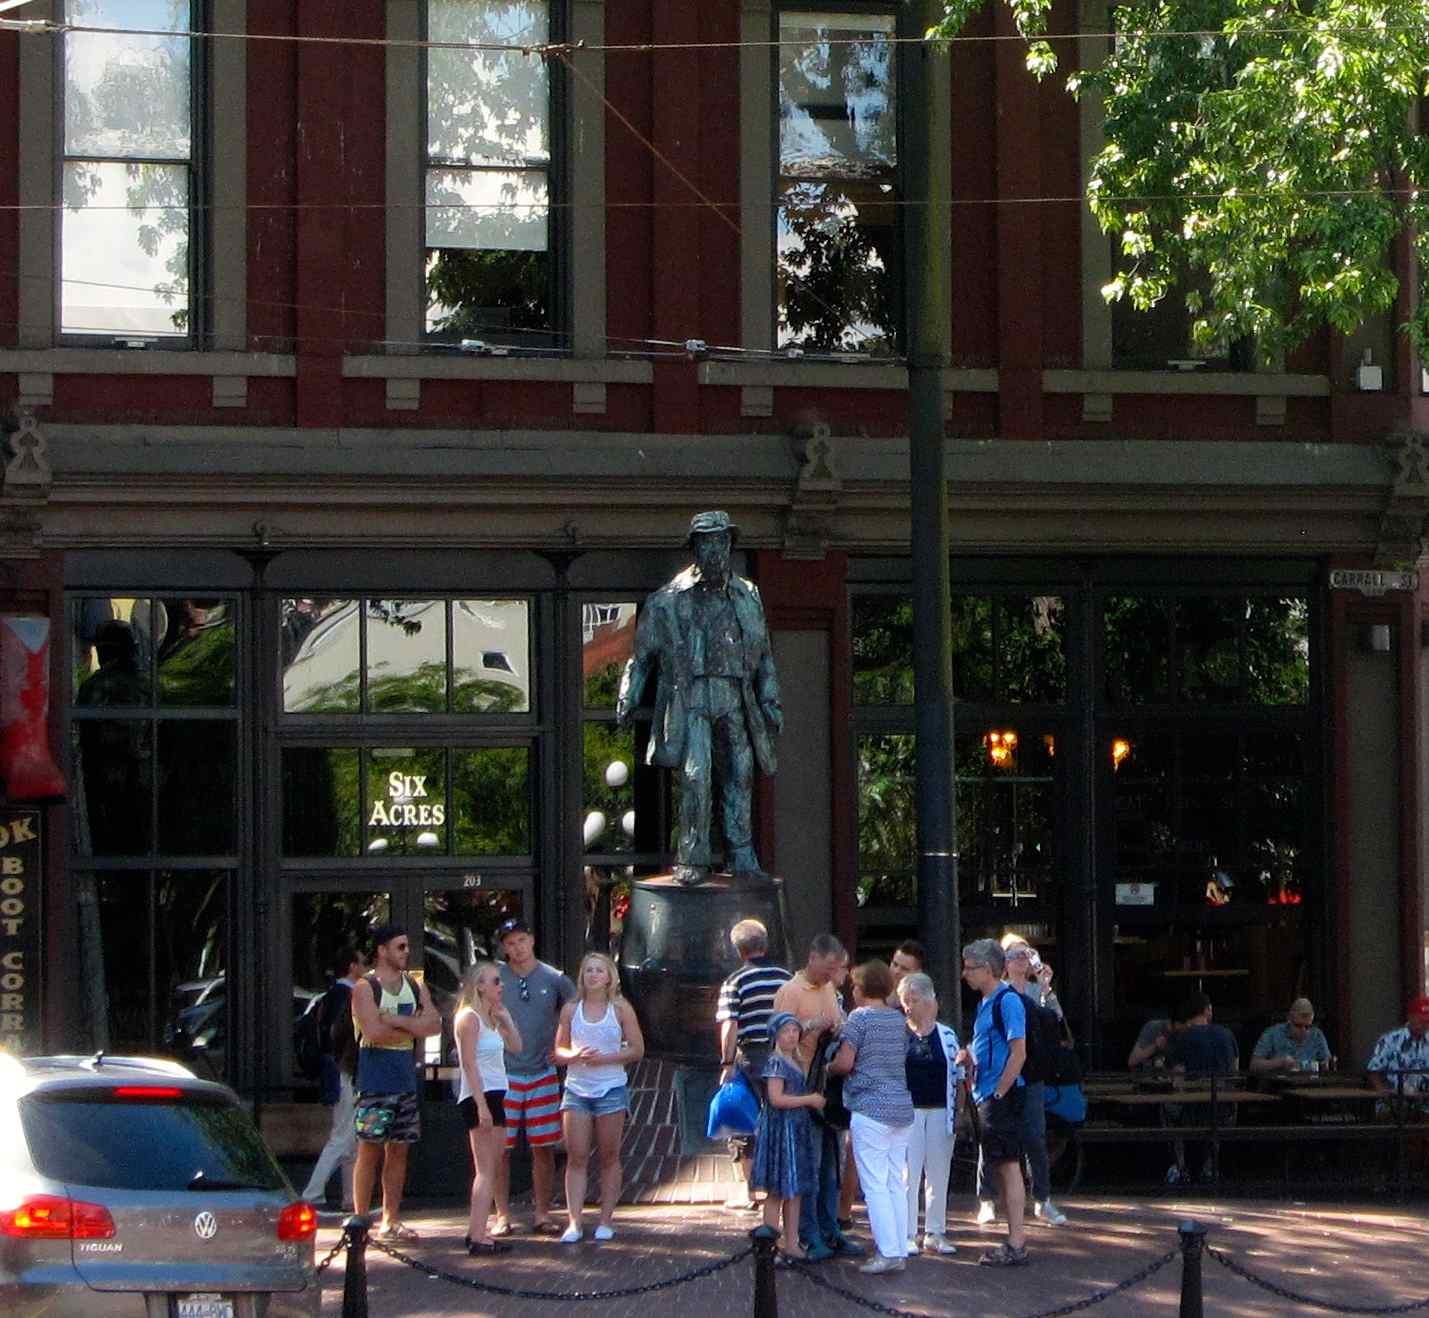 Gastown Vancouver: Traveler's Guide: Historic Attractions In Vancouver, BC